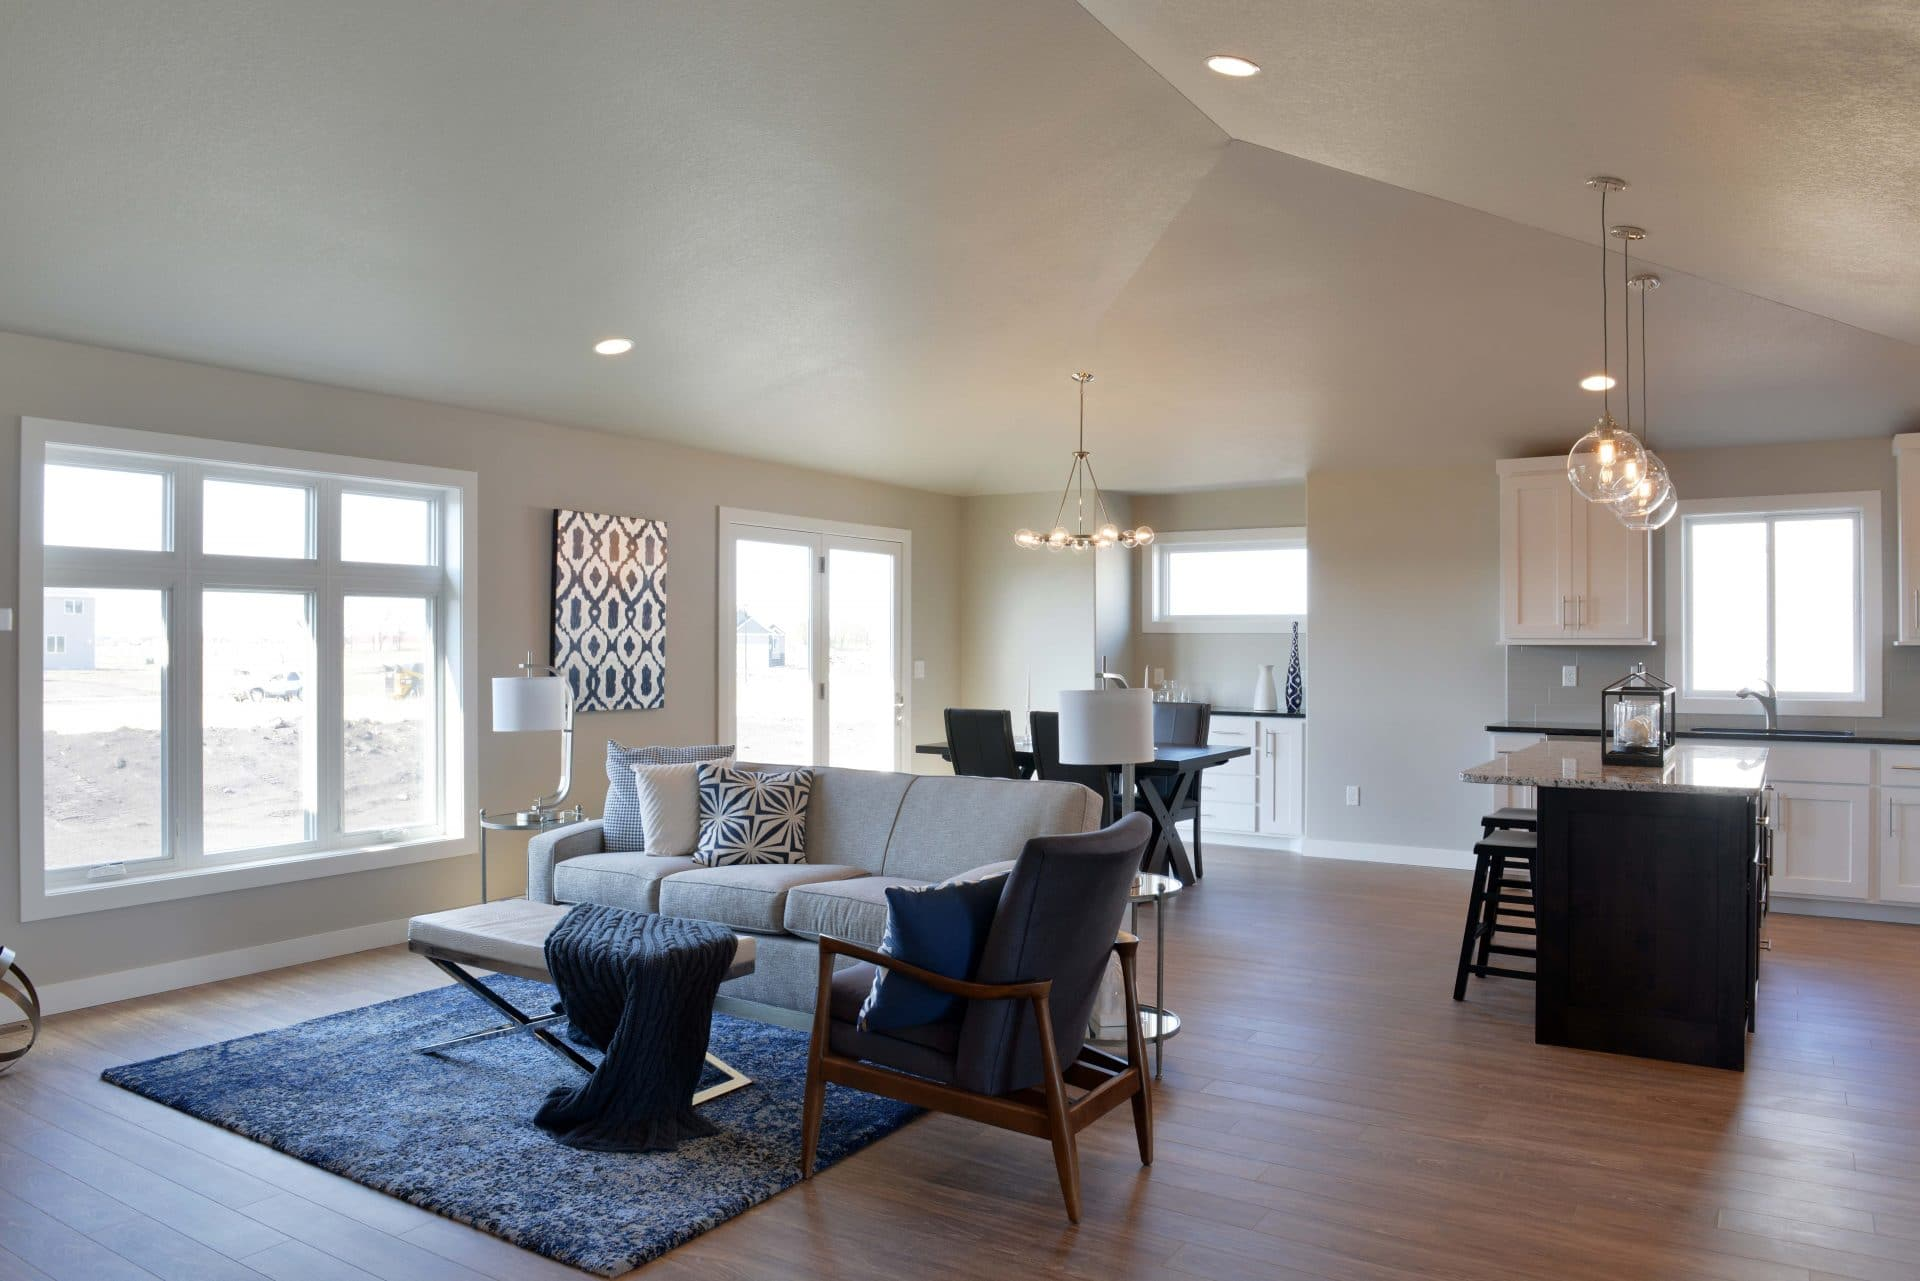 3 Tips For Decorating a House With an Open Floor Plan ...